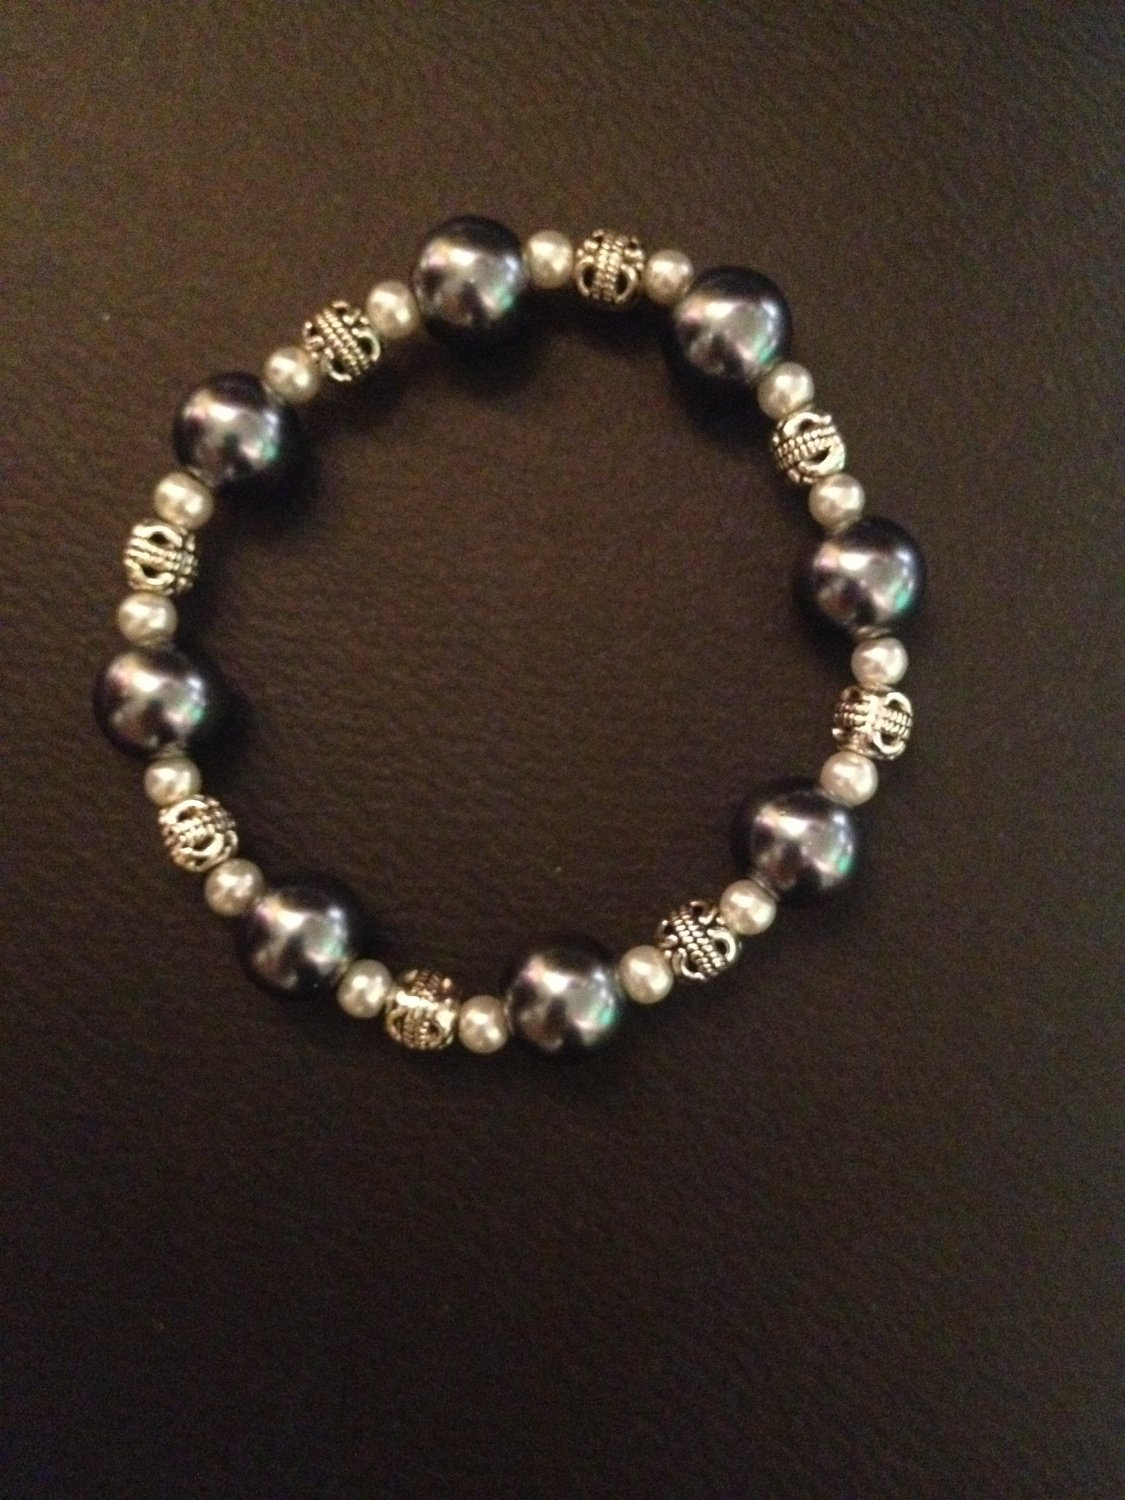 Hematite with Pearl and Antique Silver-Plated Beads Bracelet